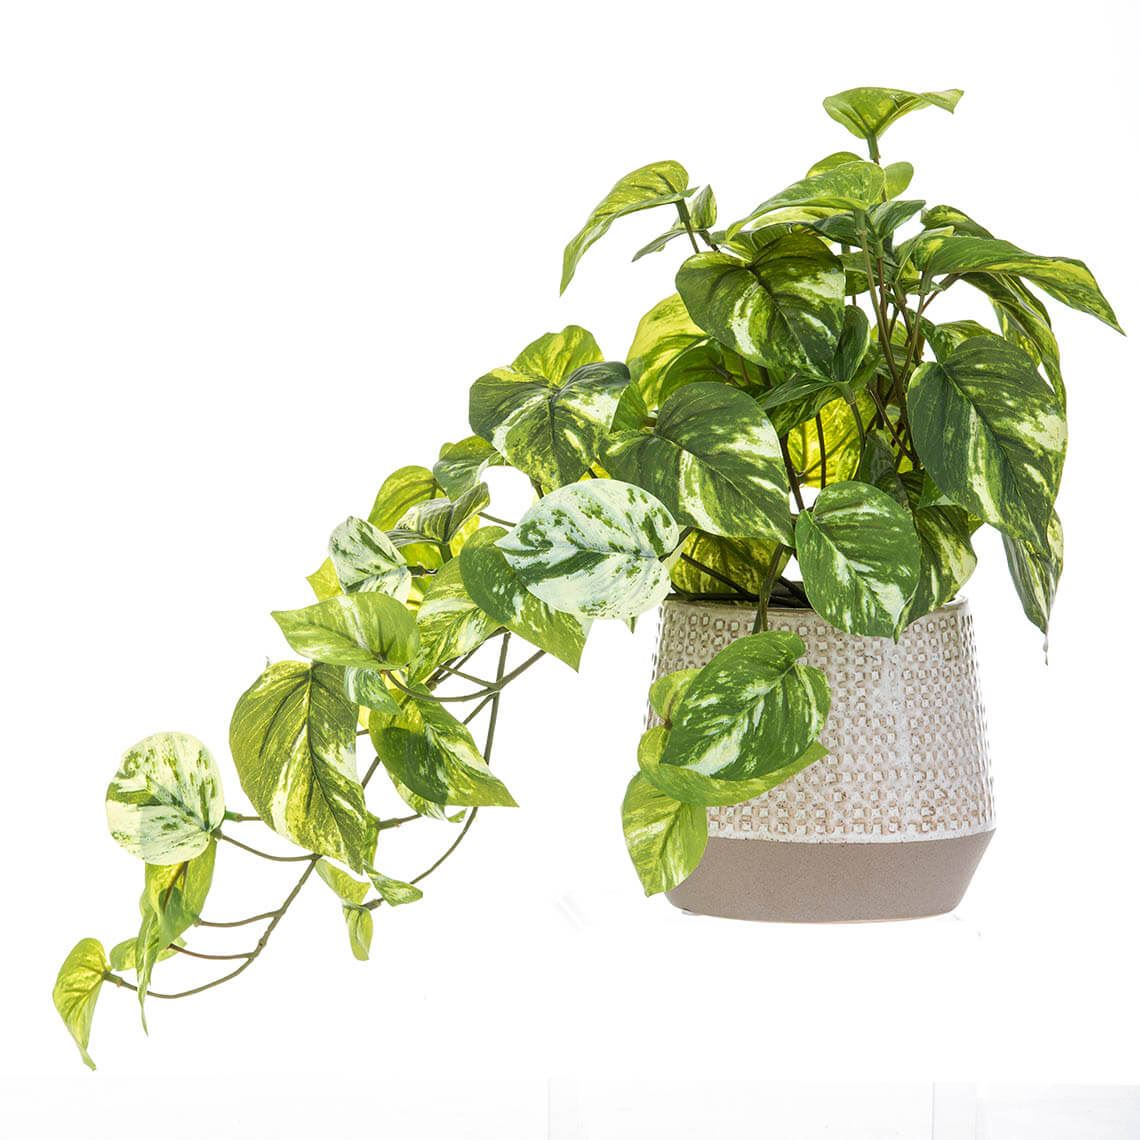 Pothos Hanging Bush Layla Pot Size W 35cm x D 30cm x H 50cm in Green Freedom by Freedom, a Plants for sale on Style Sourcebook